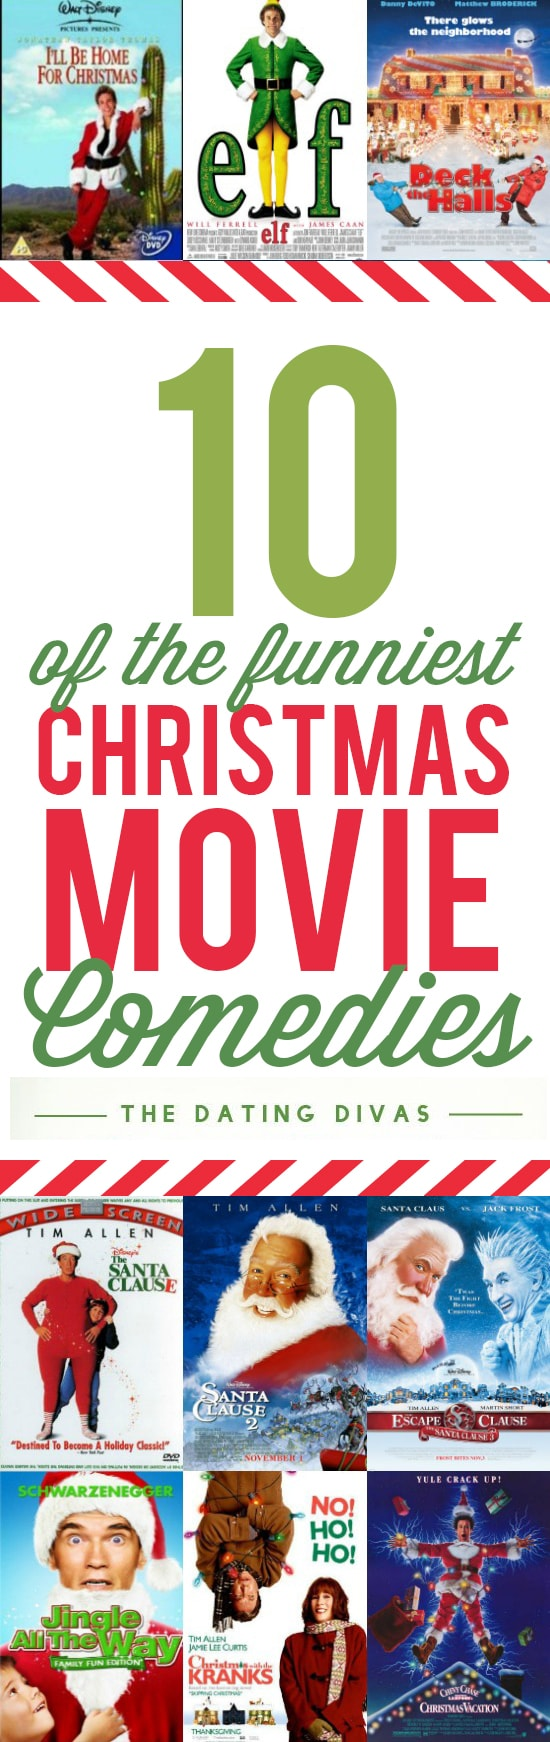 Christmas Movies Comedies